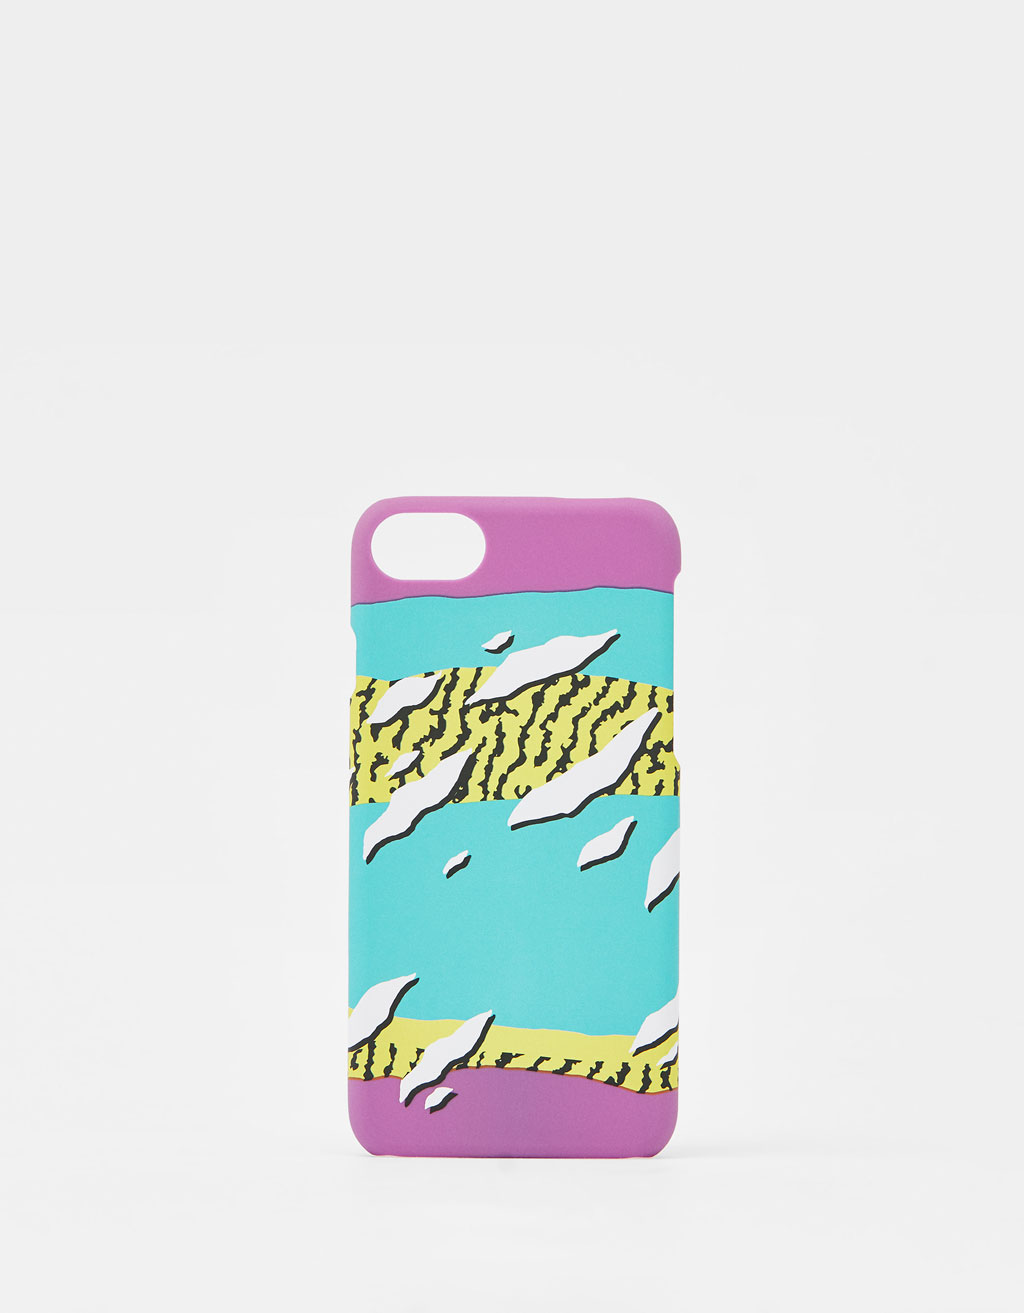 Memphis iPhone 6 / 6S / 7 / 8 case